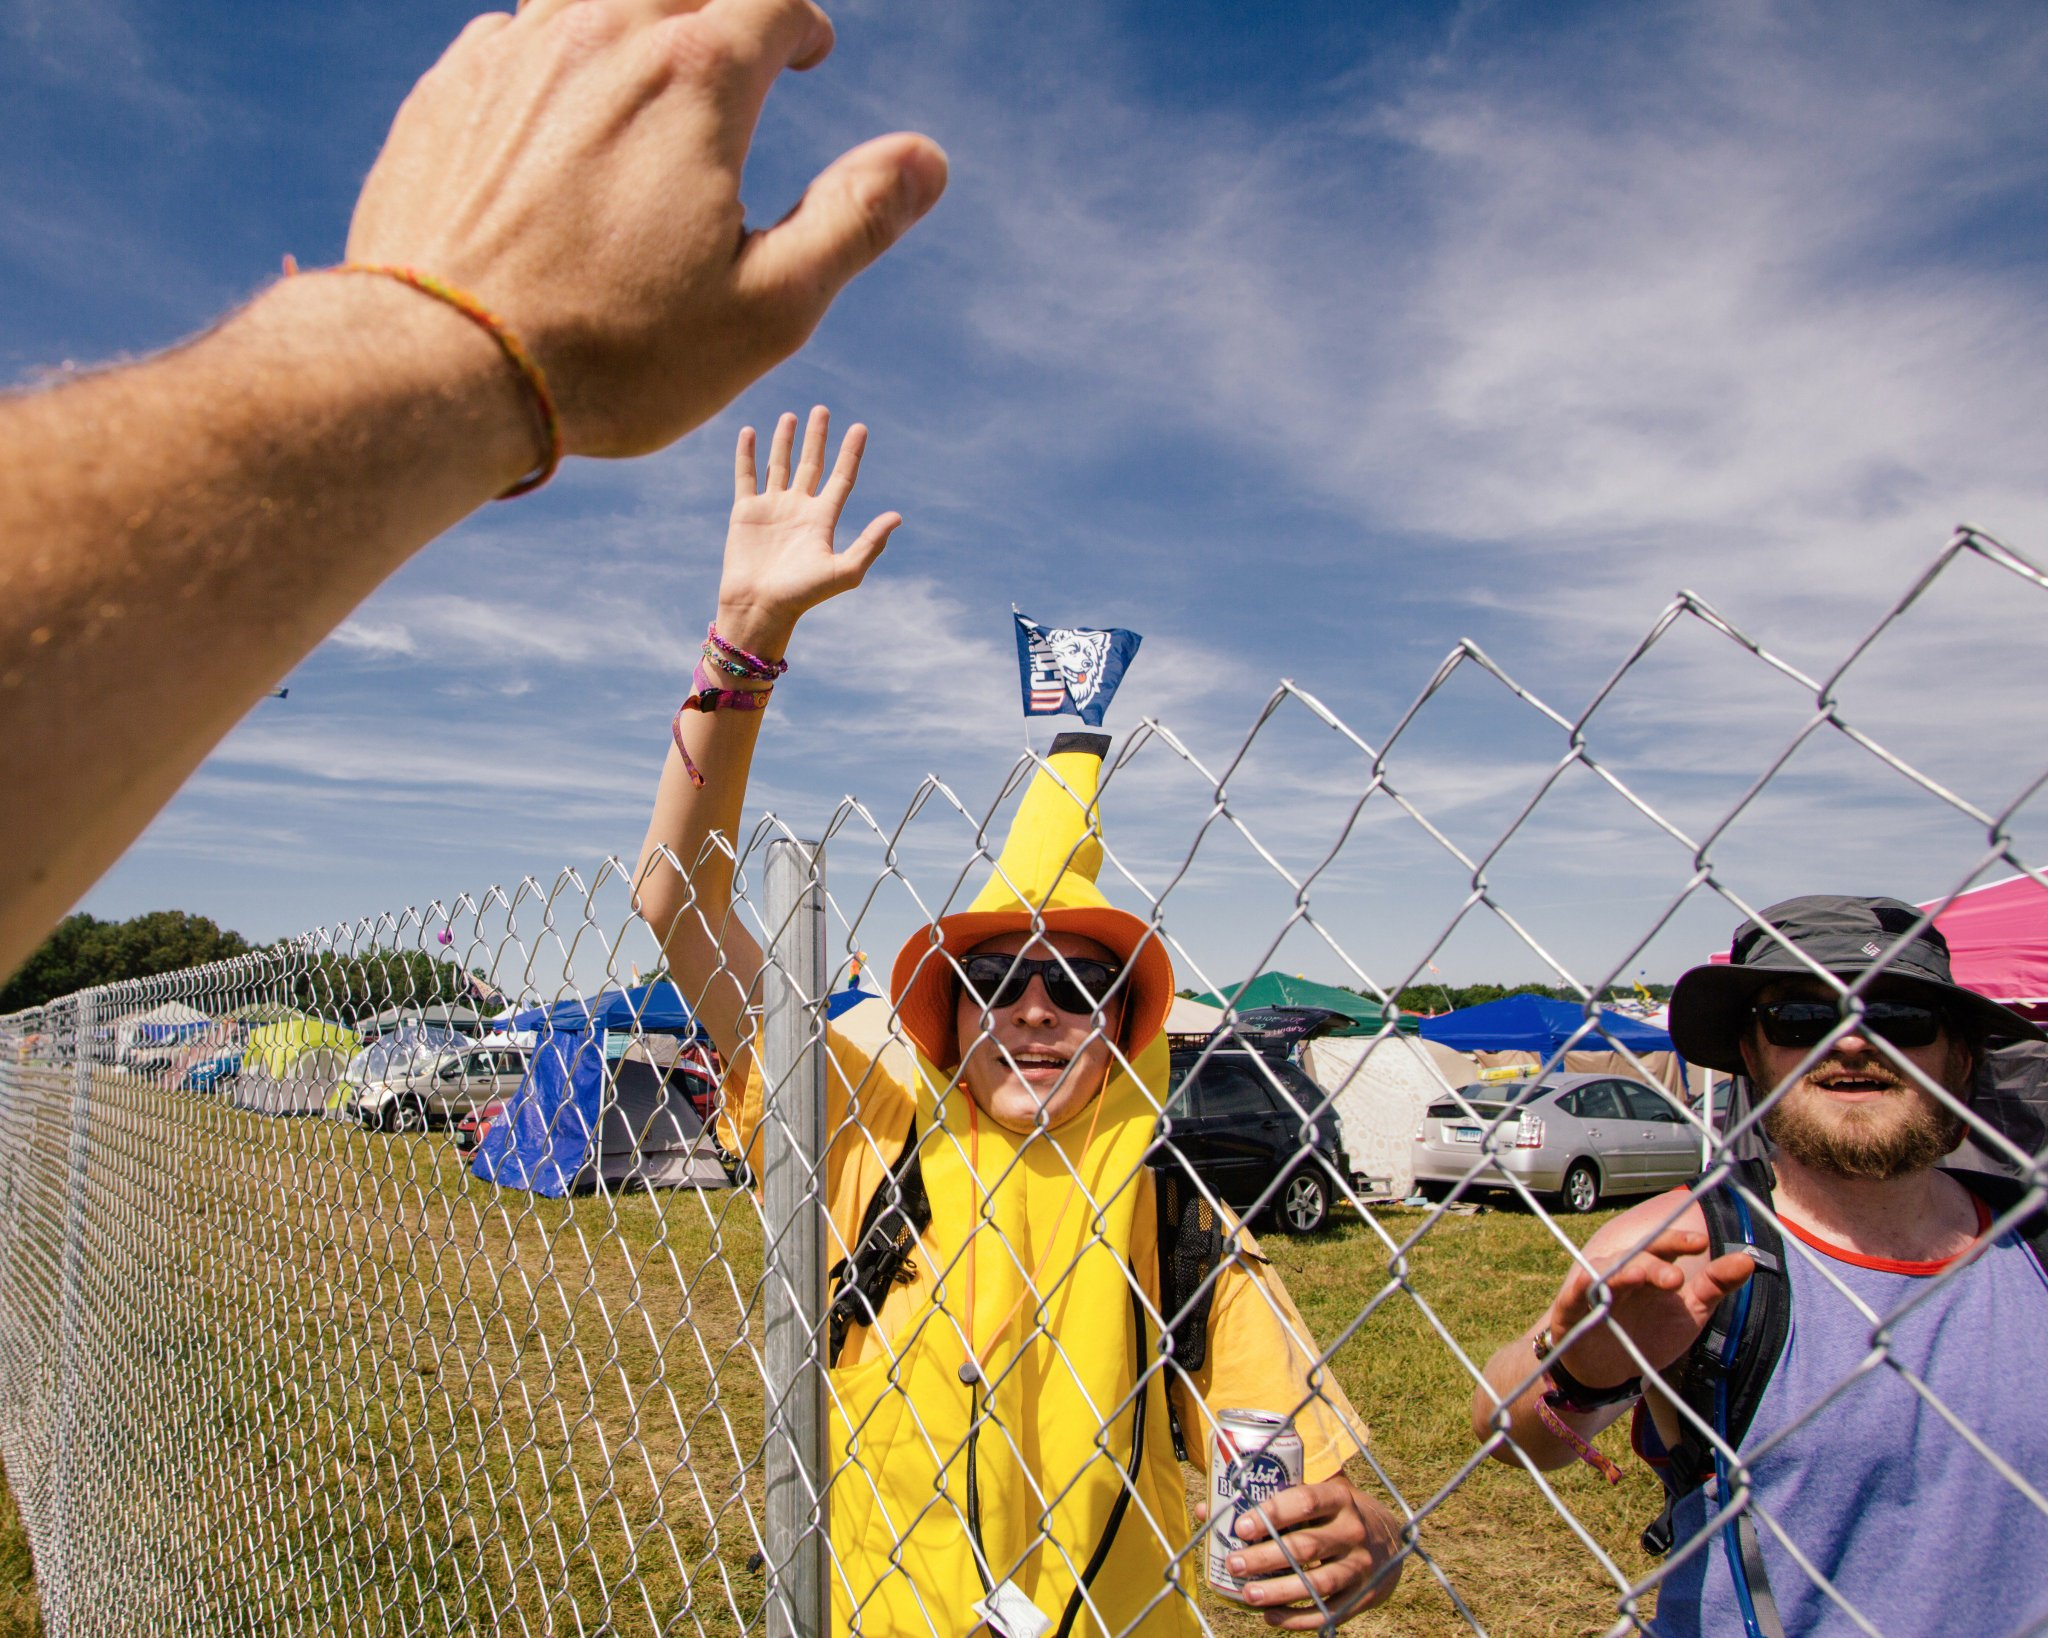 No fence should ever stop you from high-fiving a banana-man. #HighFiveFriday  (��: @tomkinsonphoto) #Bonnaroo https://t.co/isGc1nSJts